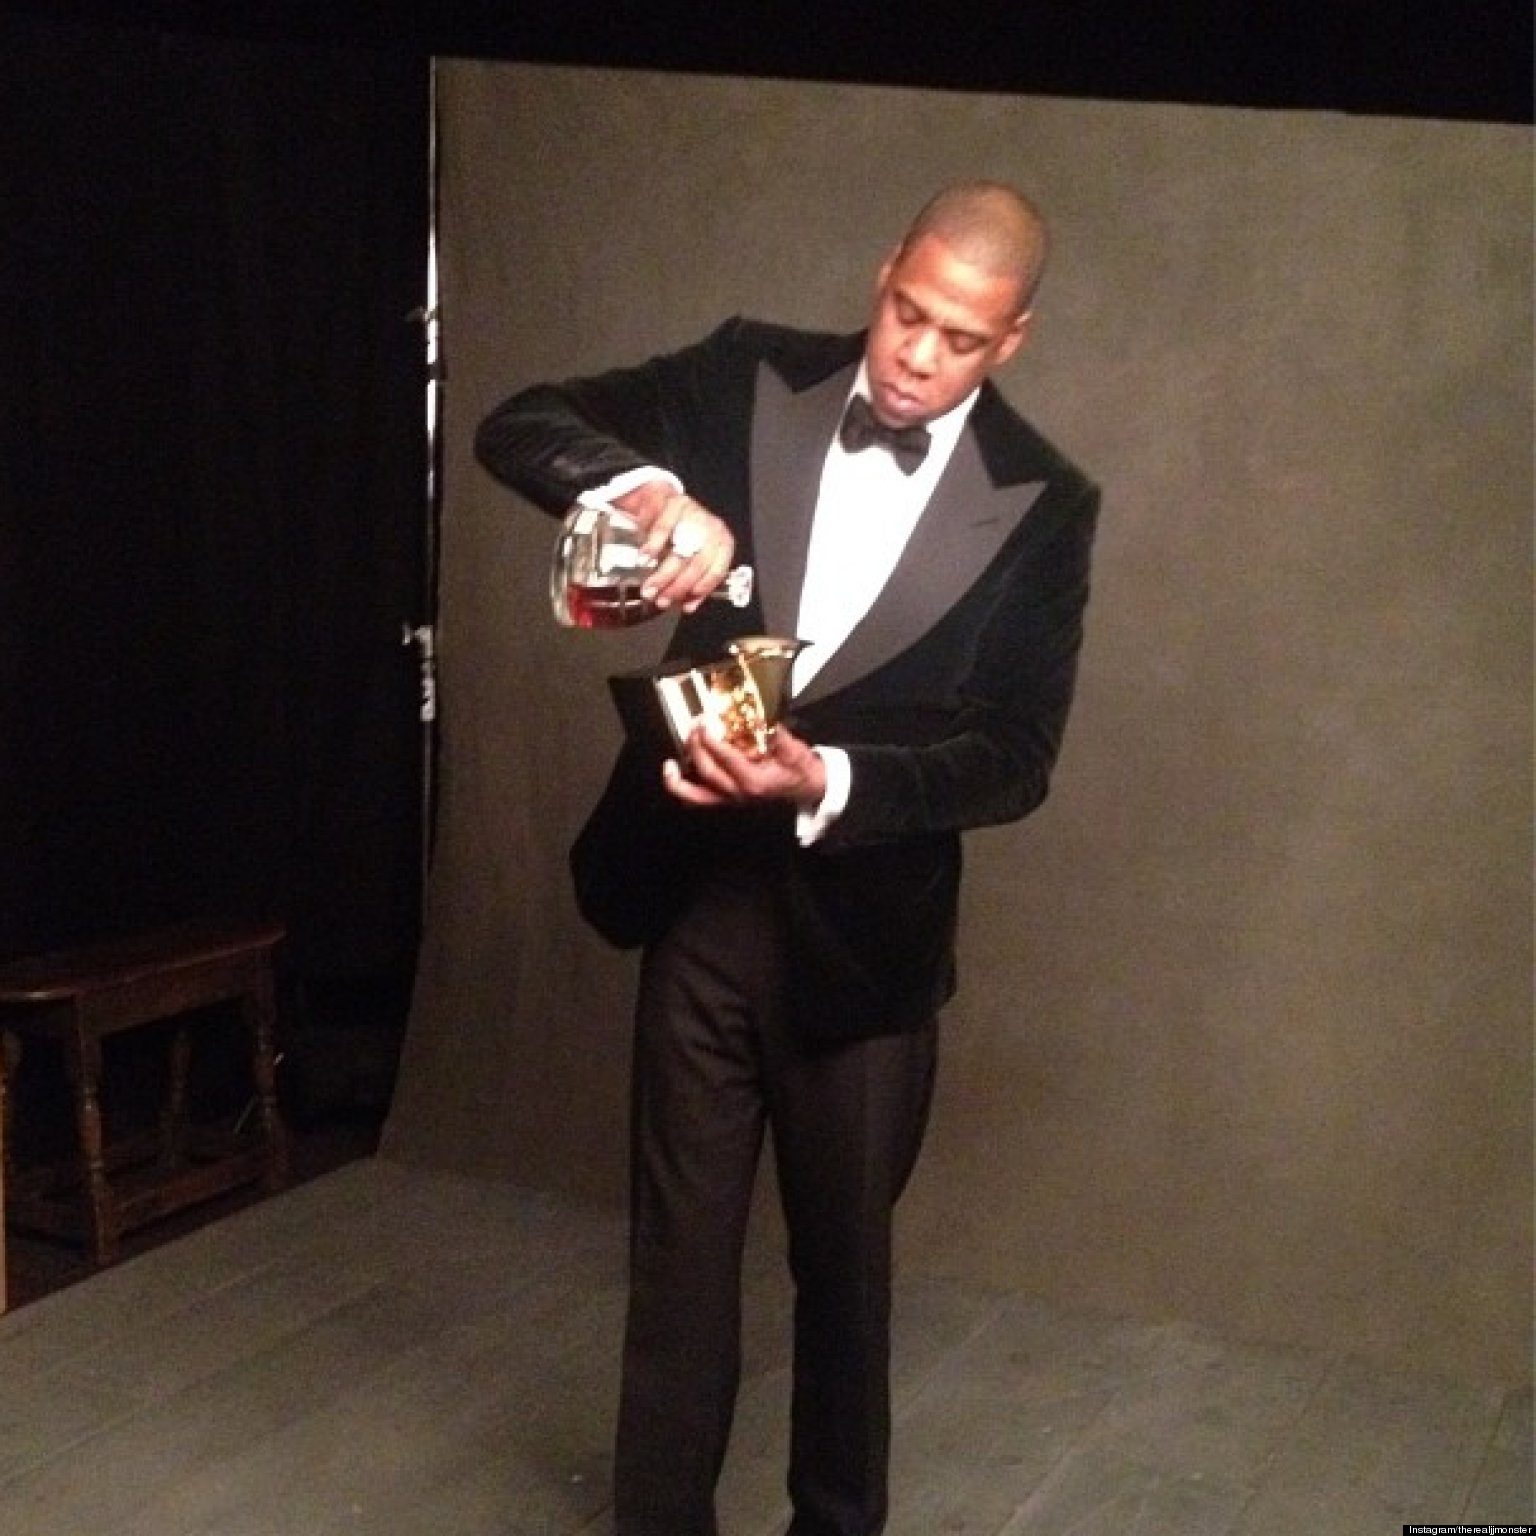 PHOTOS: Jay-Z Drank Cognac Out Of His Grammy Award